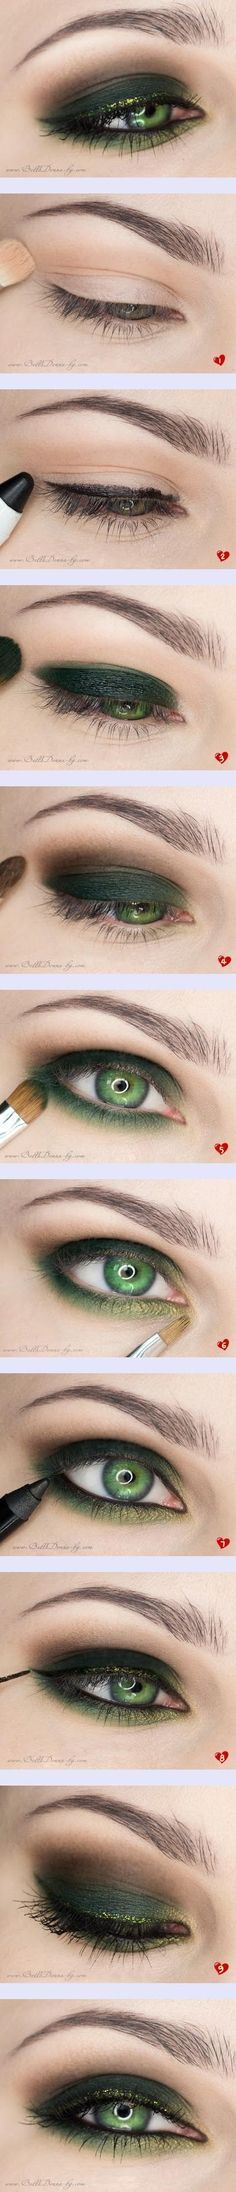 St. patrick's Day Perfect makeup idea: Emerald (or shamrock-any shade, just need light and dark) green smokey eye style beautiful for green eyes! | Pinterest |…